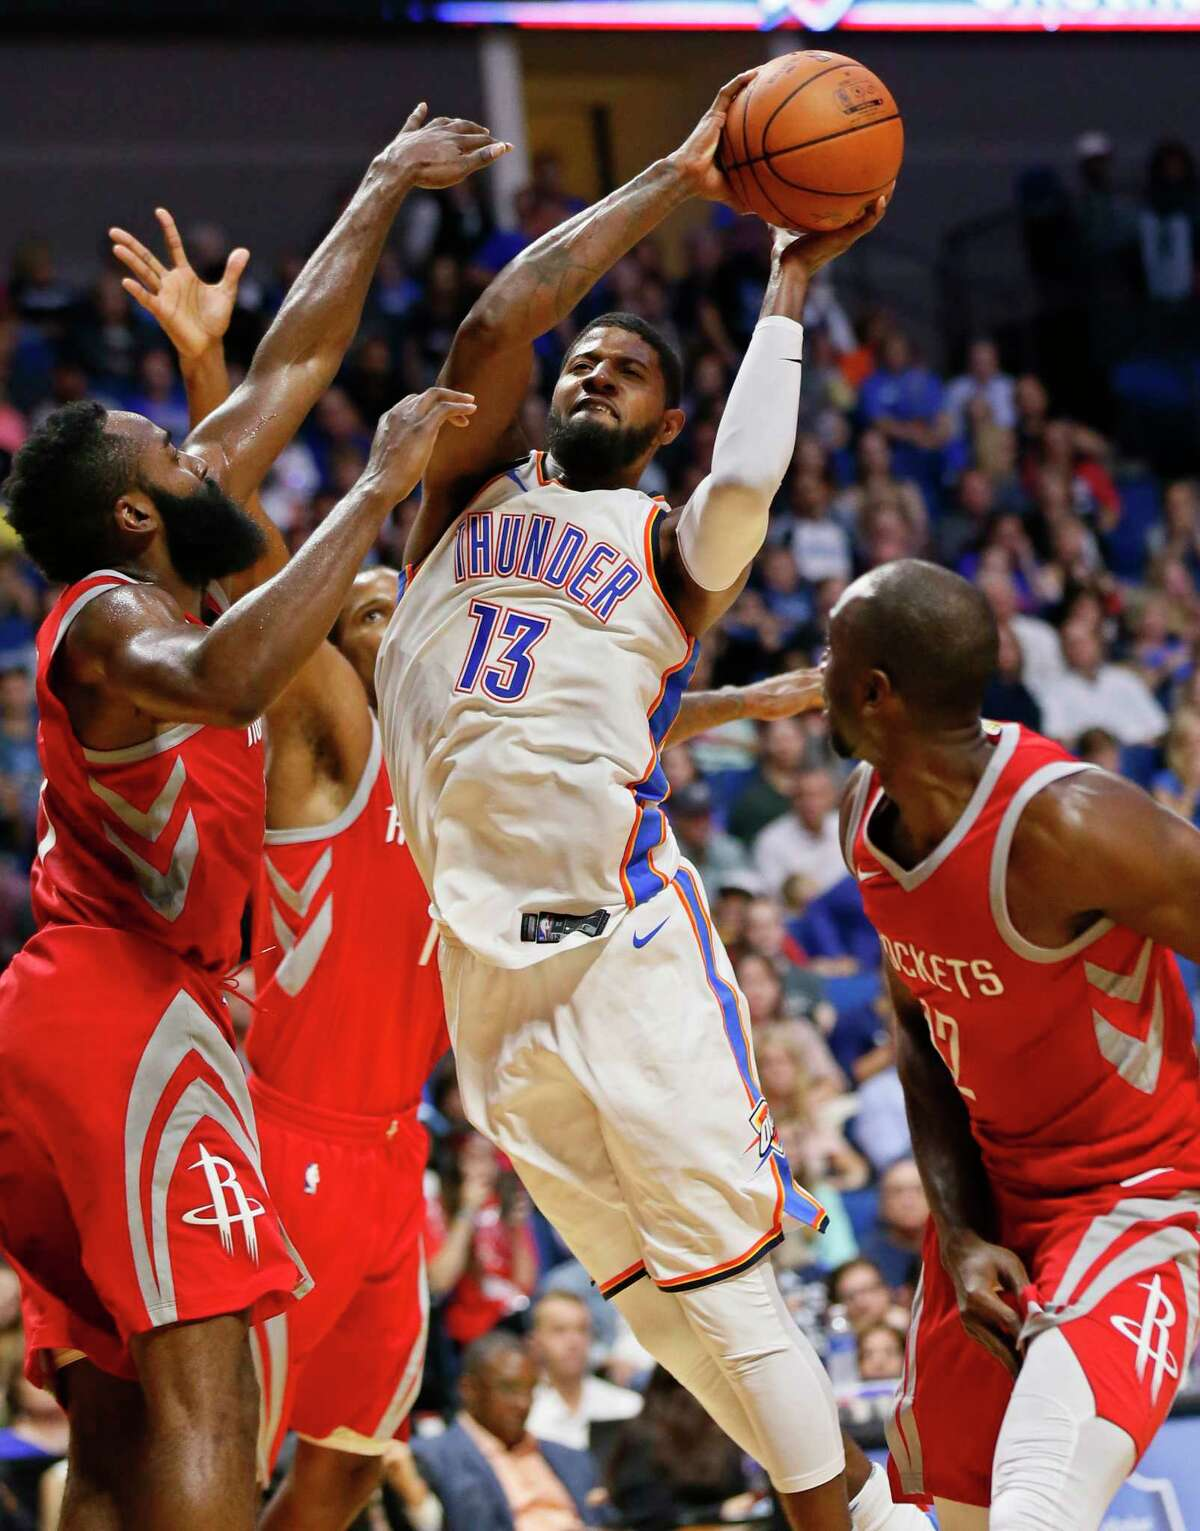 New Thunder forward Paul George, right, leans away from the Rockets' James Harden, left, and Trevor Ariza to try a shot. George finished with 15 points.